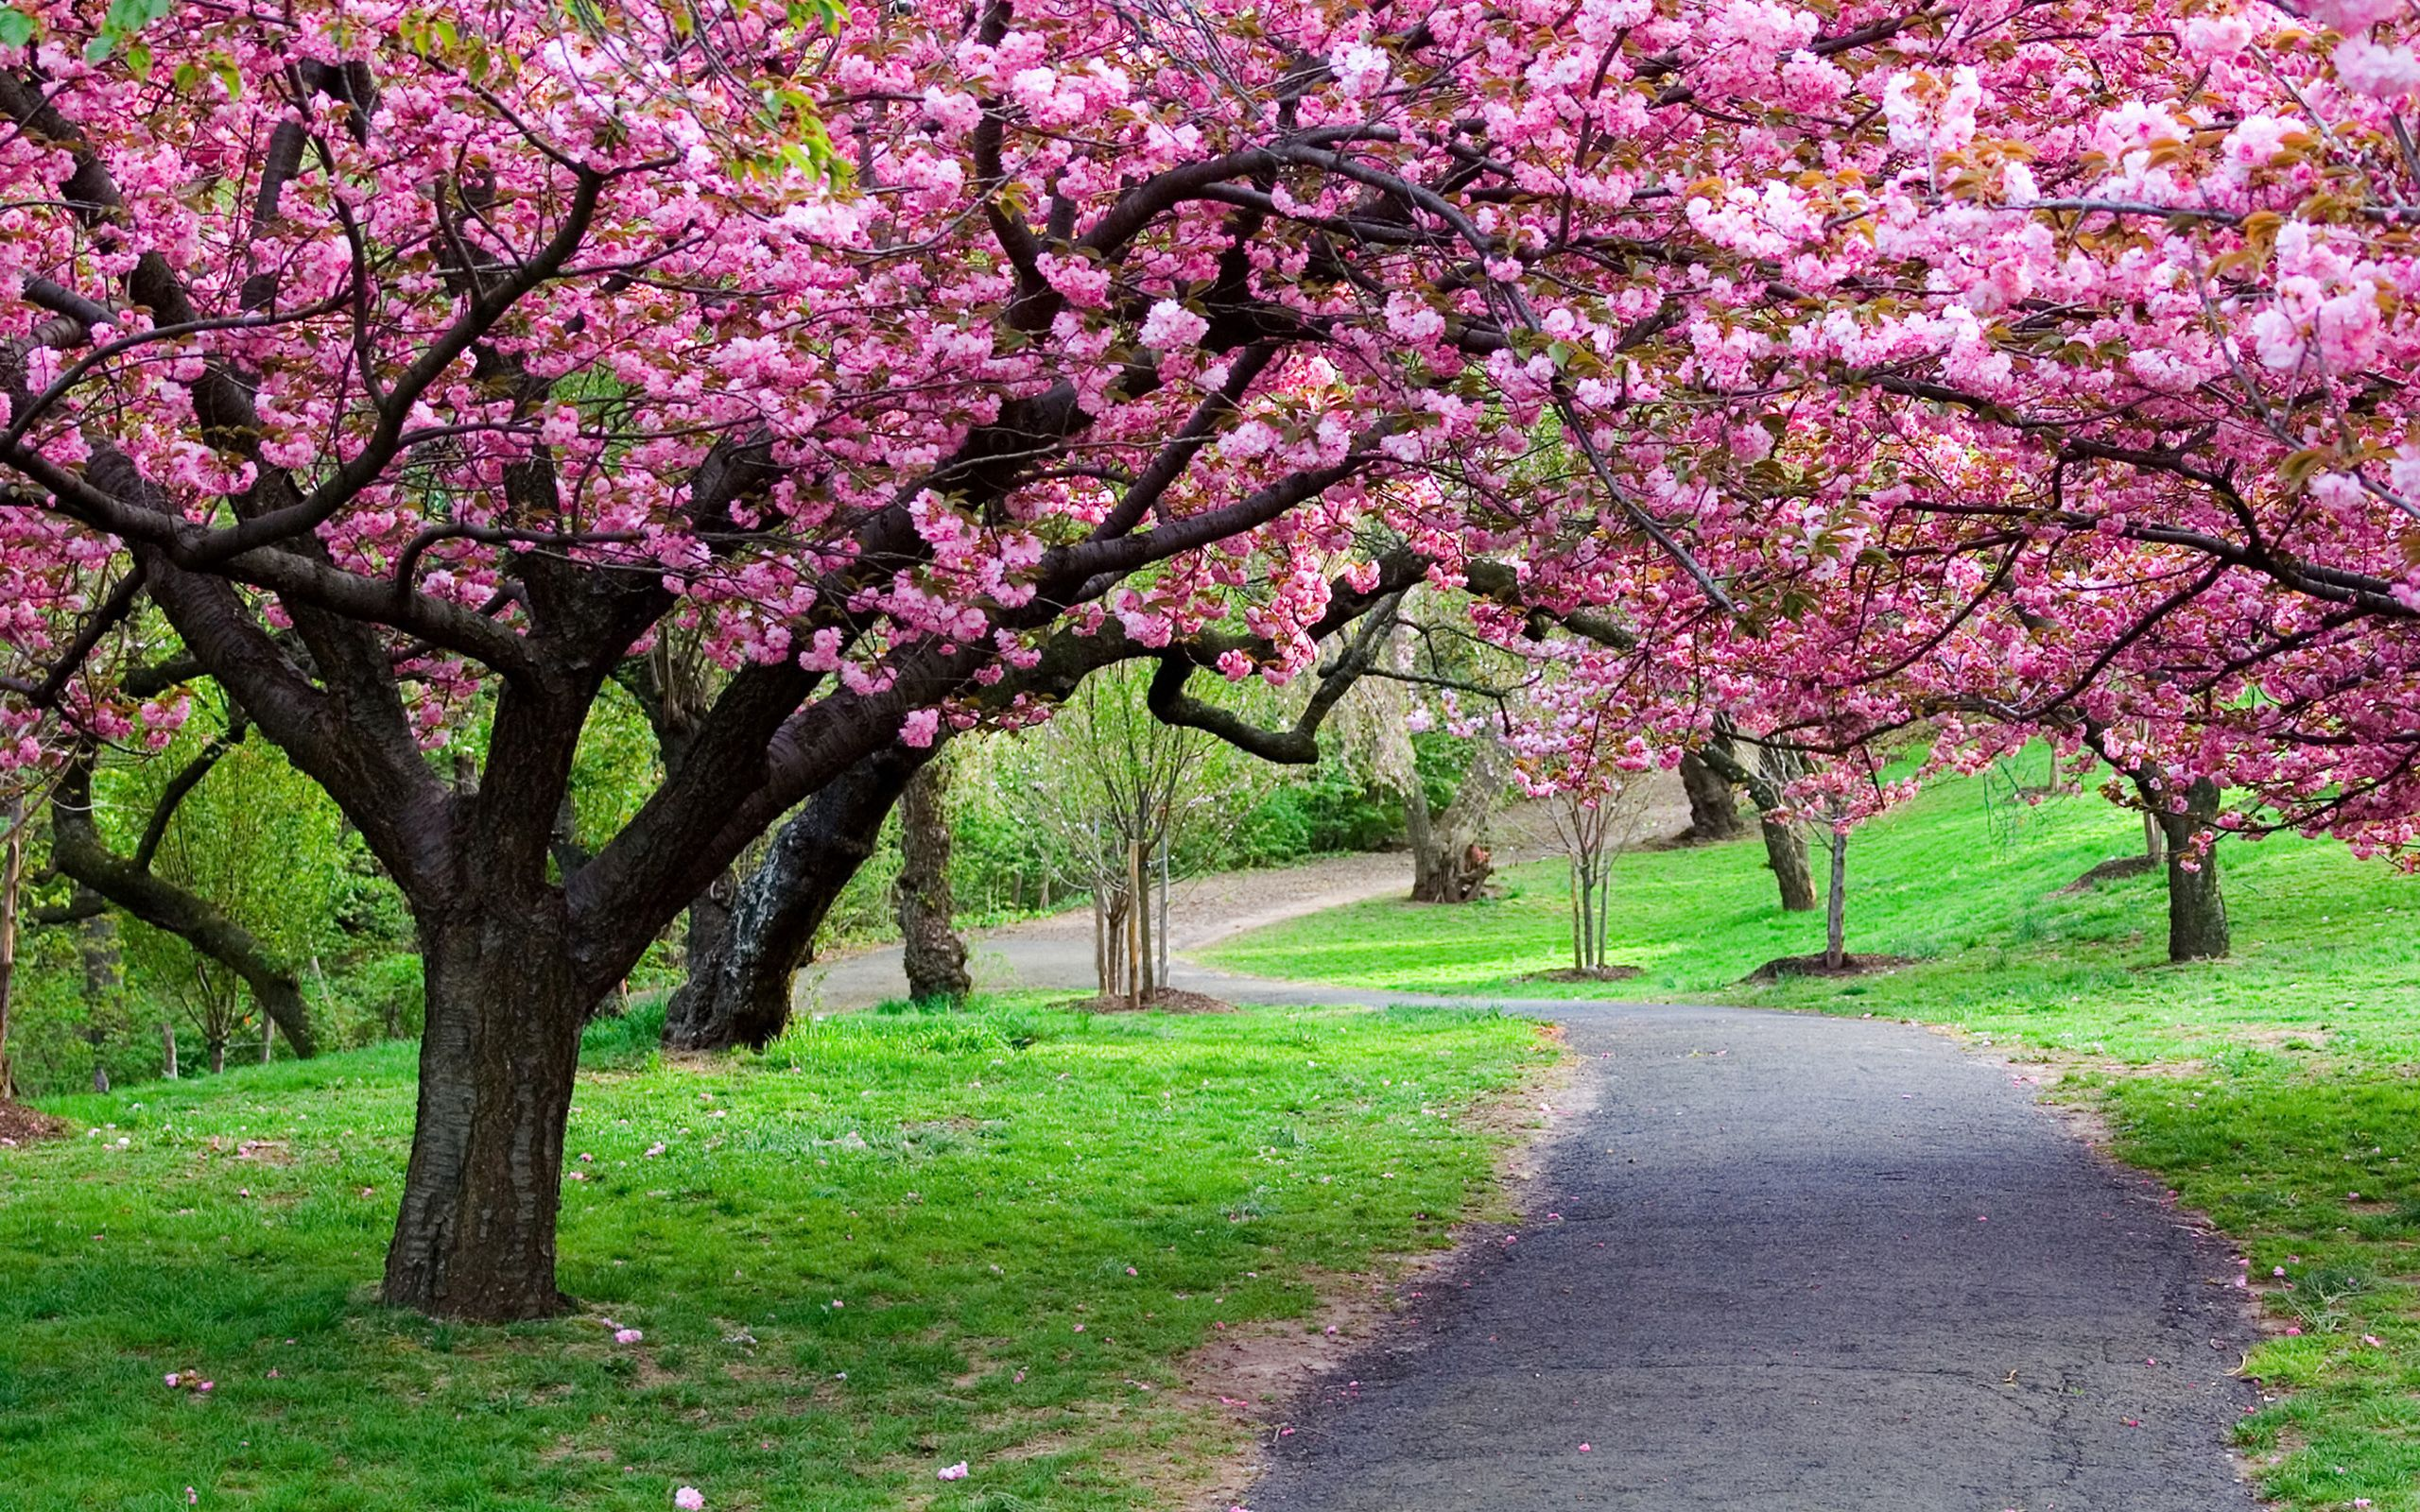 147002 free wallpaper 480x800 for phone, download images Nature, Flowers, Trees, Road, Path 480x800 for mobile